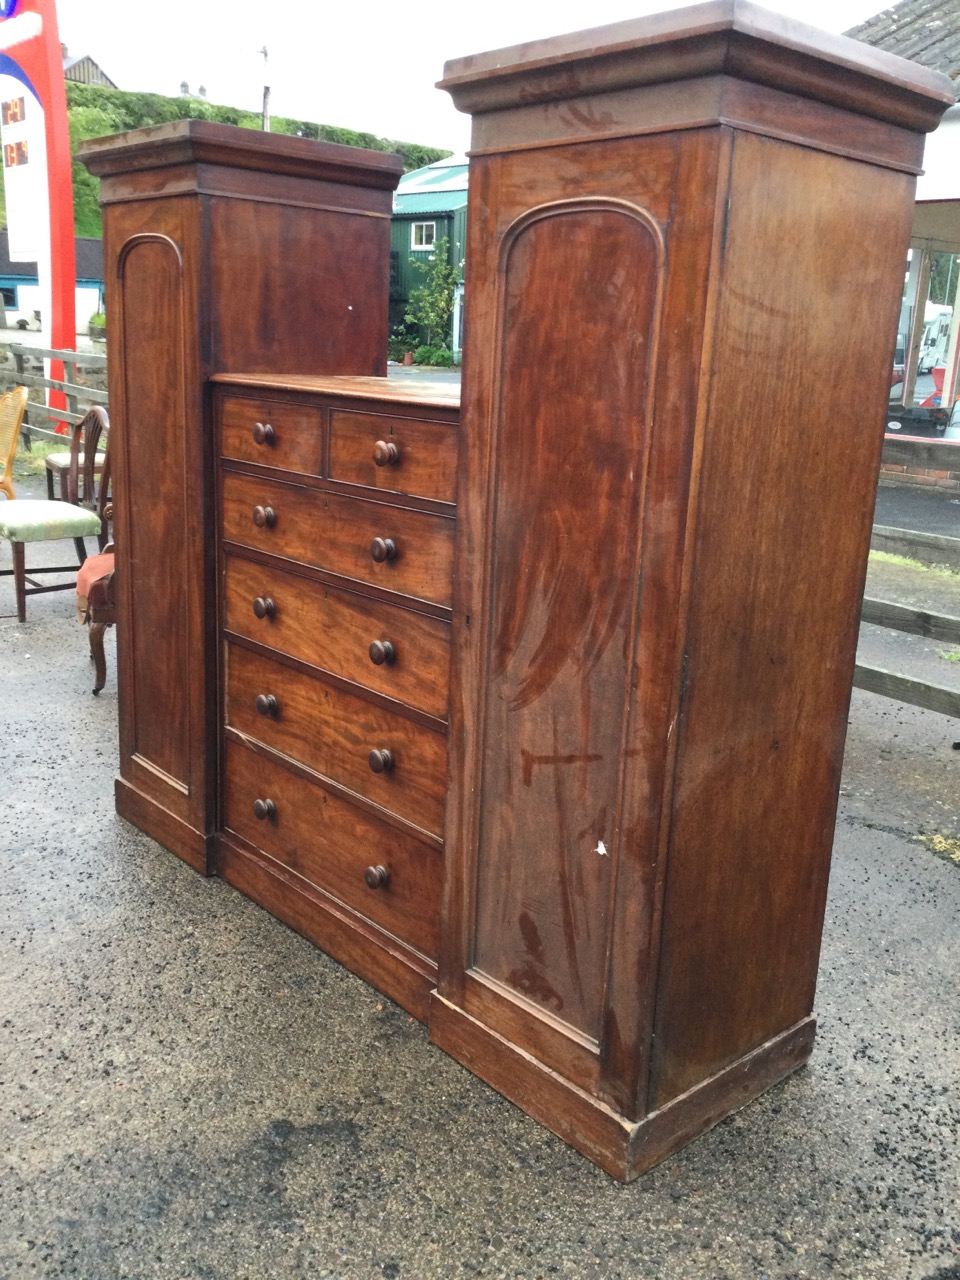 A nineteenth century mahogany sentrybox wardrobe, with pair of arched panelled door hanging - Image 3 of 3